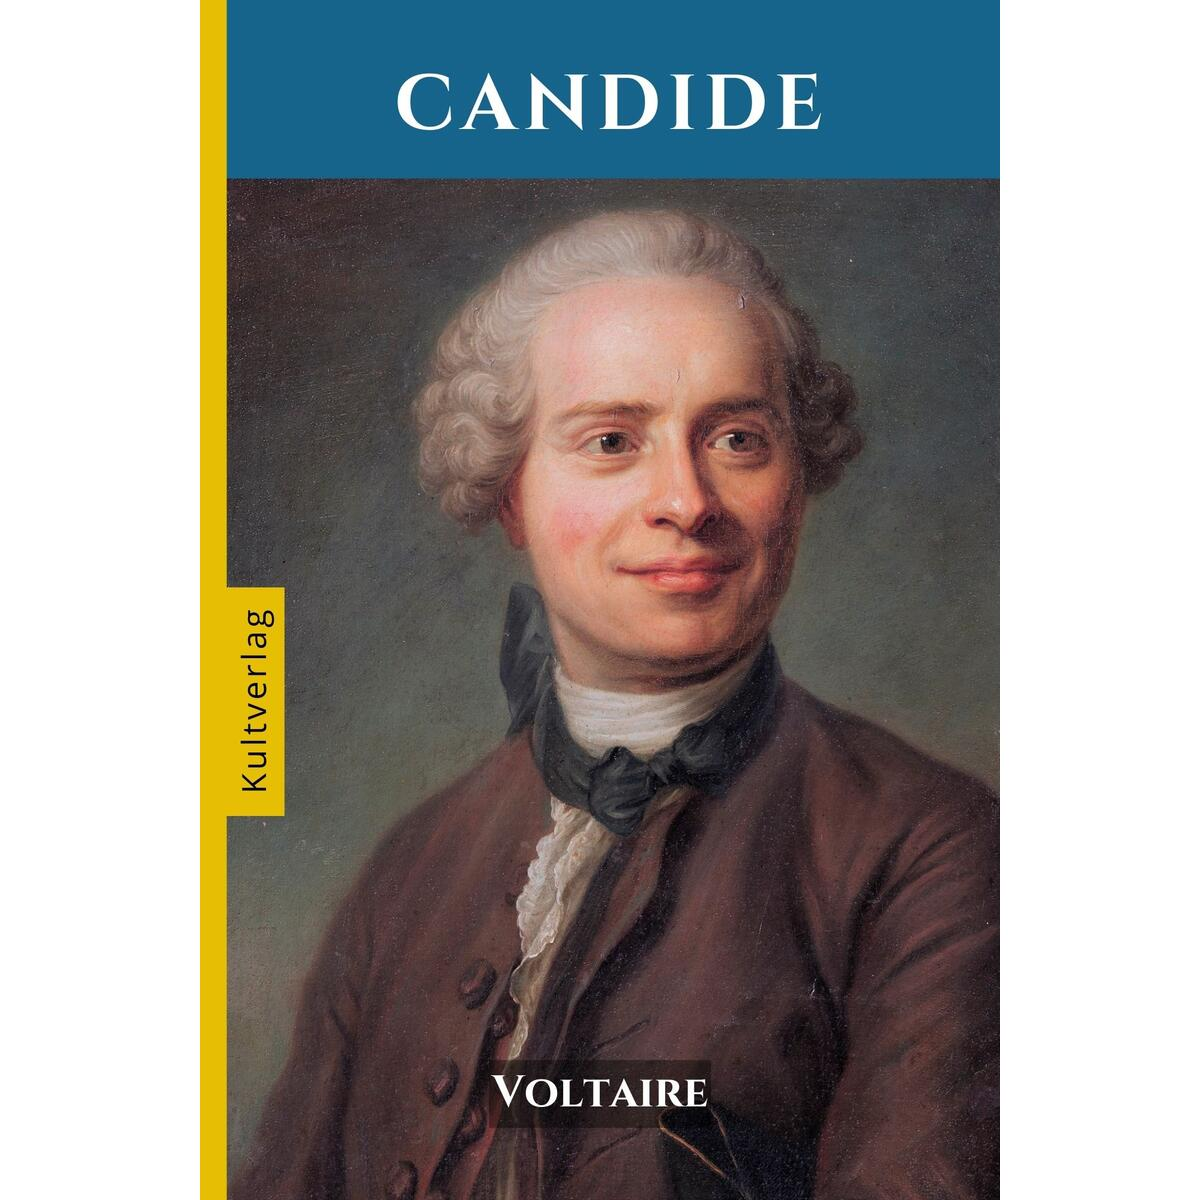 Candide - Voltaire (annotated)